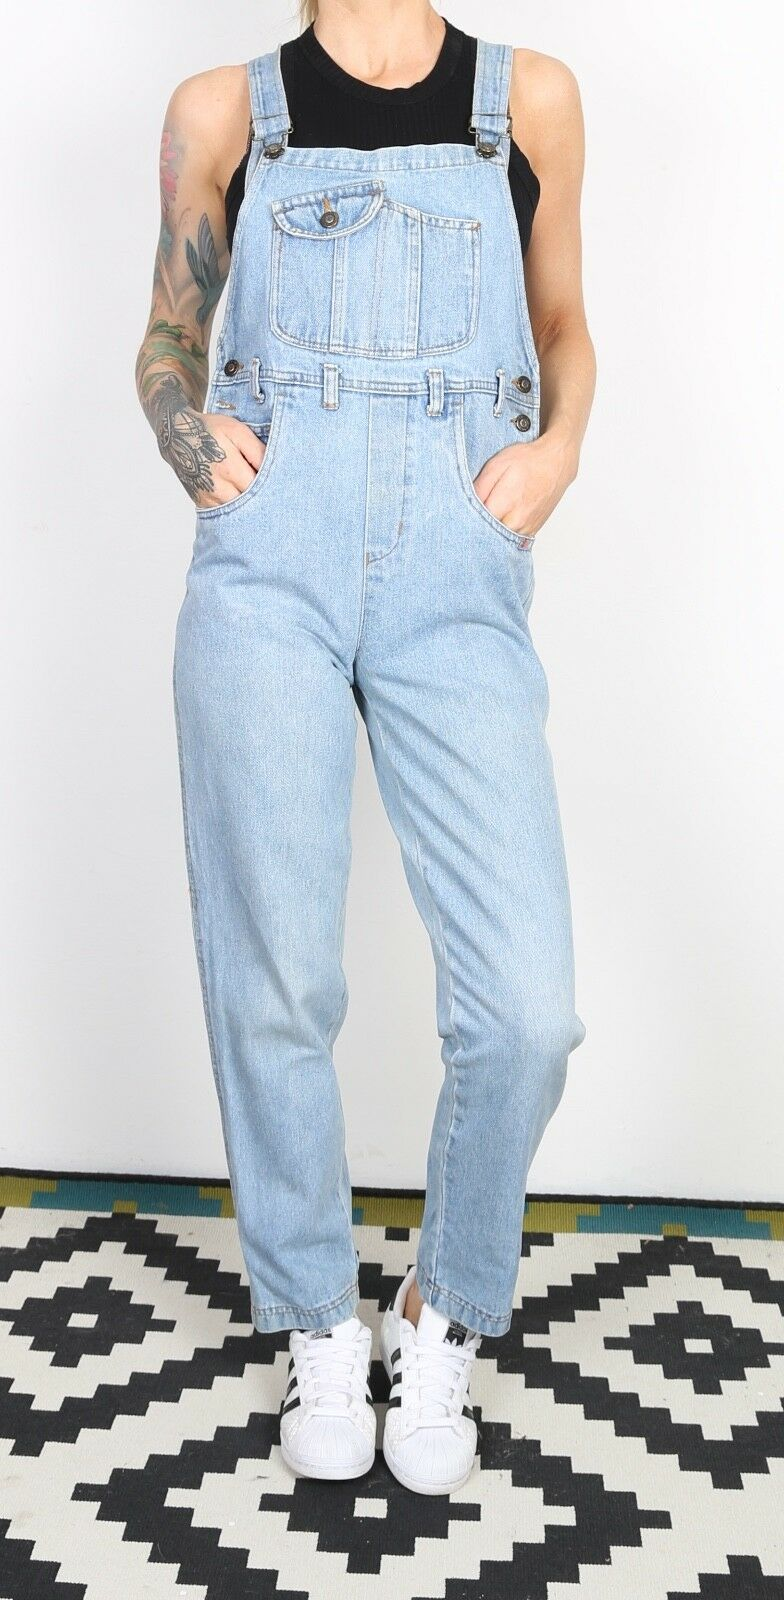 8b173f45 Denim Dungarees PETITE XS Fitted 6 XXS Oversized Wide Tapered Leg (I4C)  ogffrr5130-Jumpsuits & Rompers